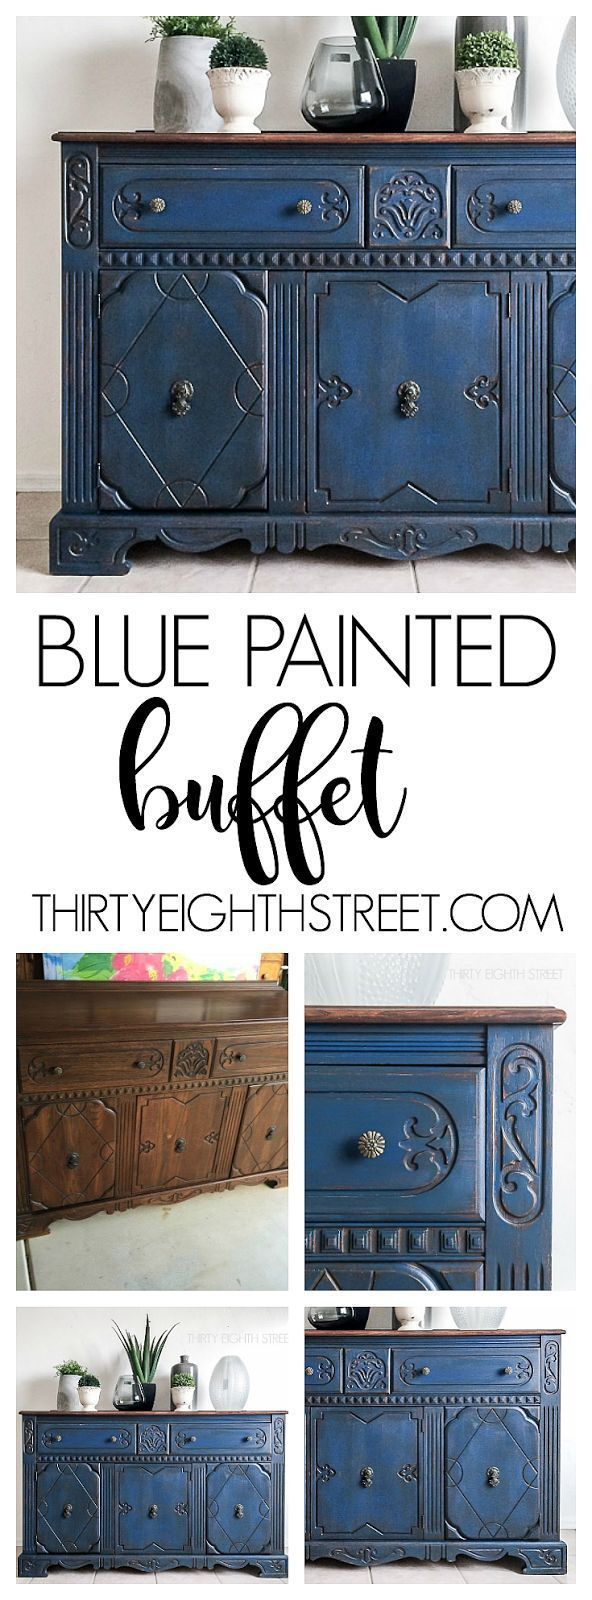 Painted buffet table furniture - Blue Painted Buffet